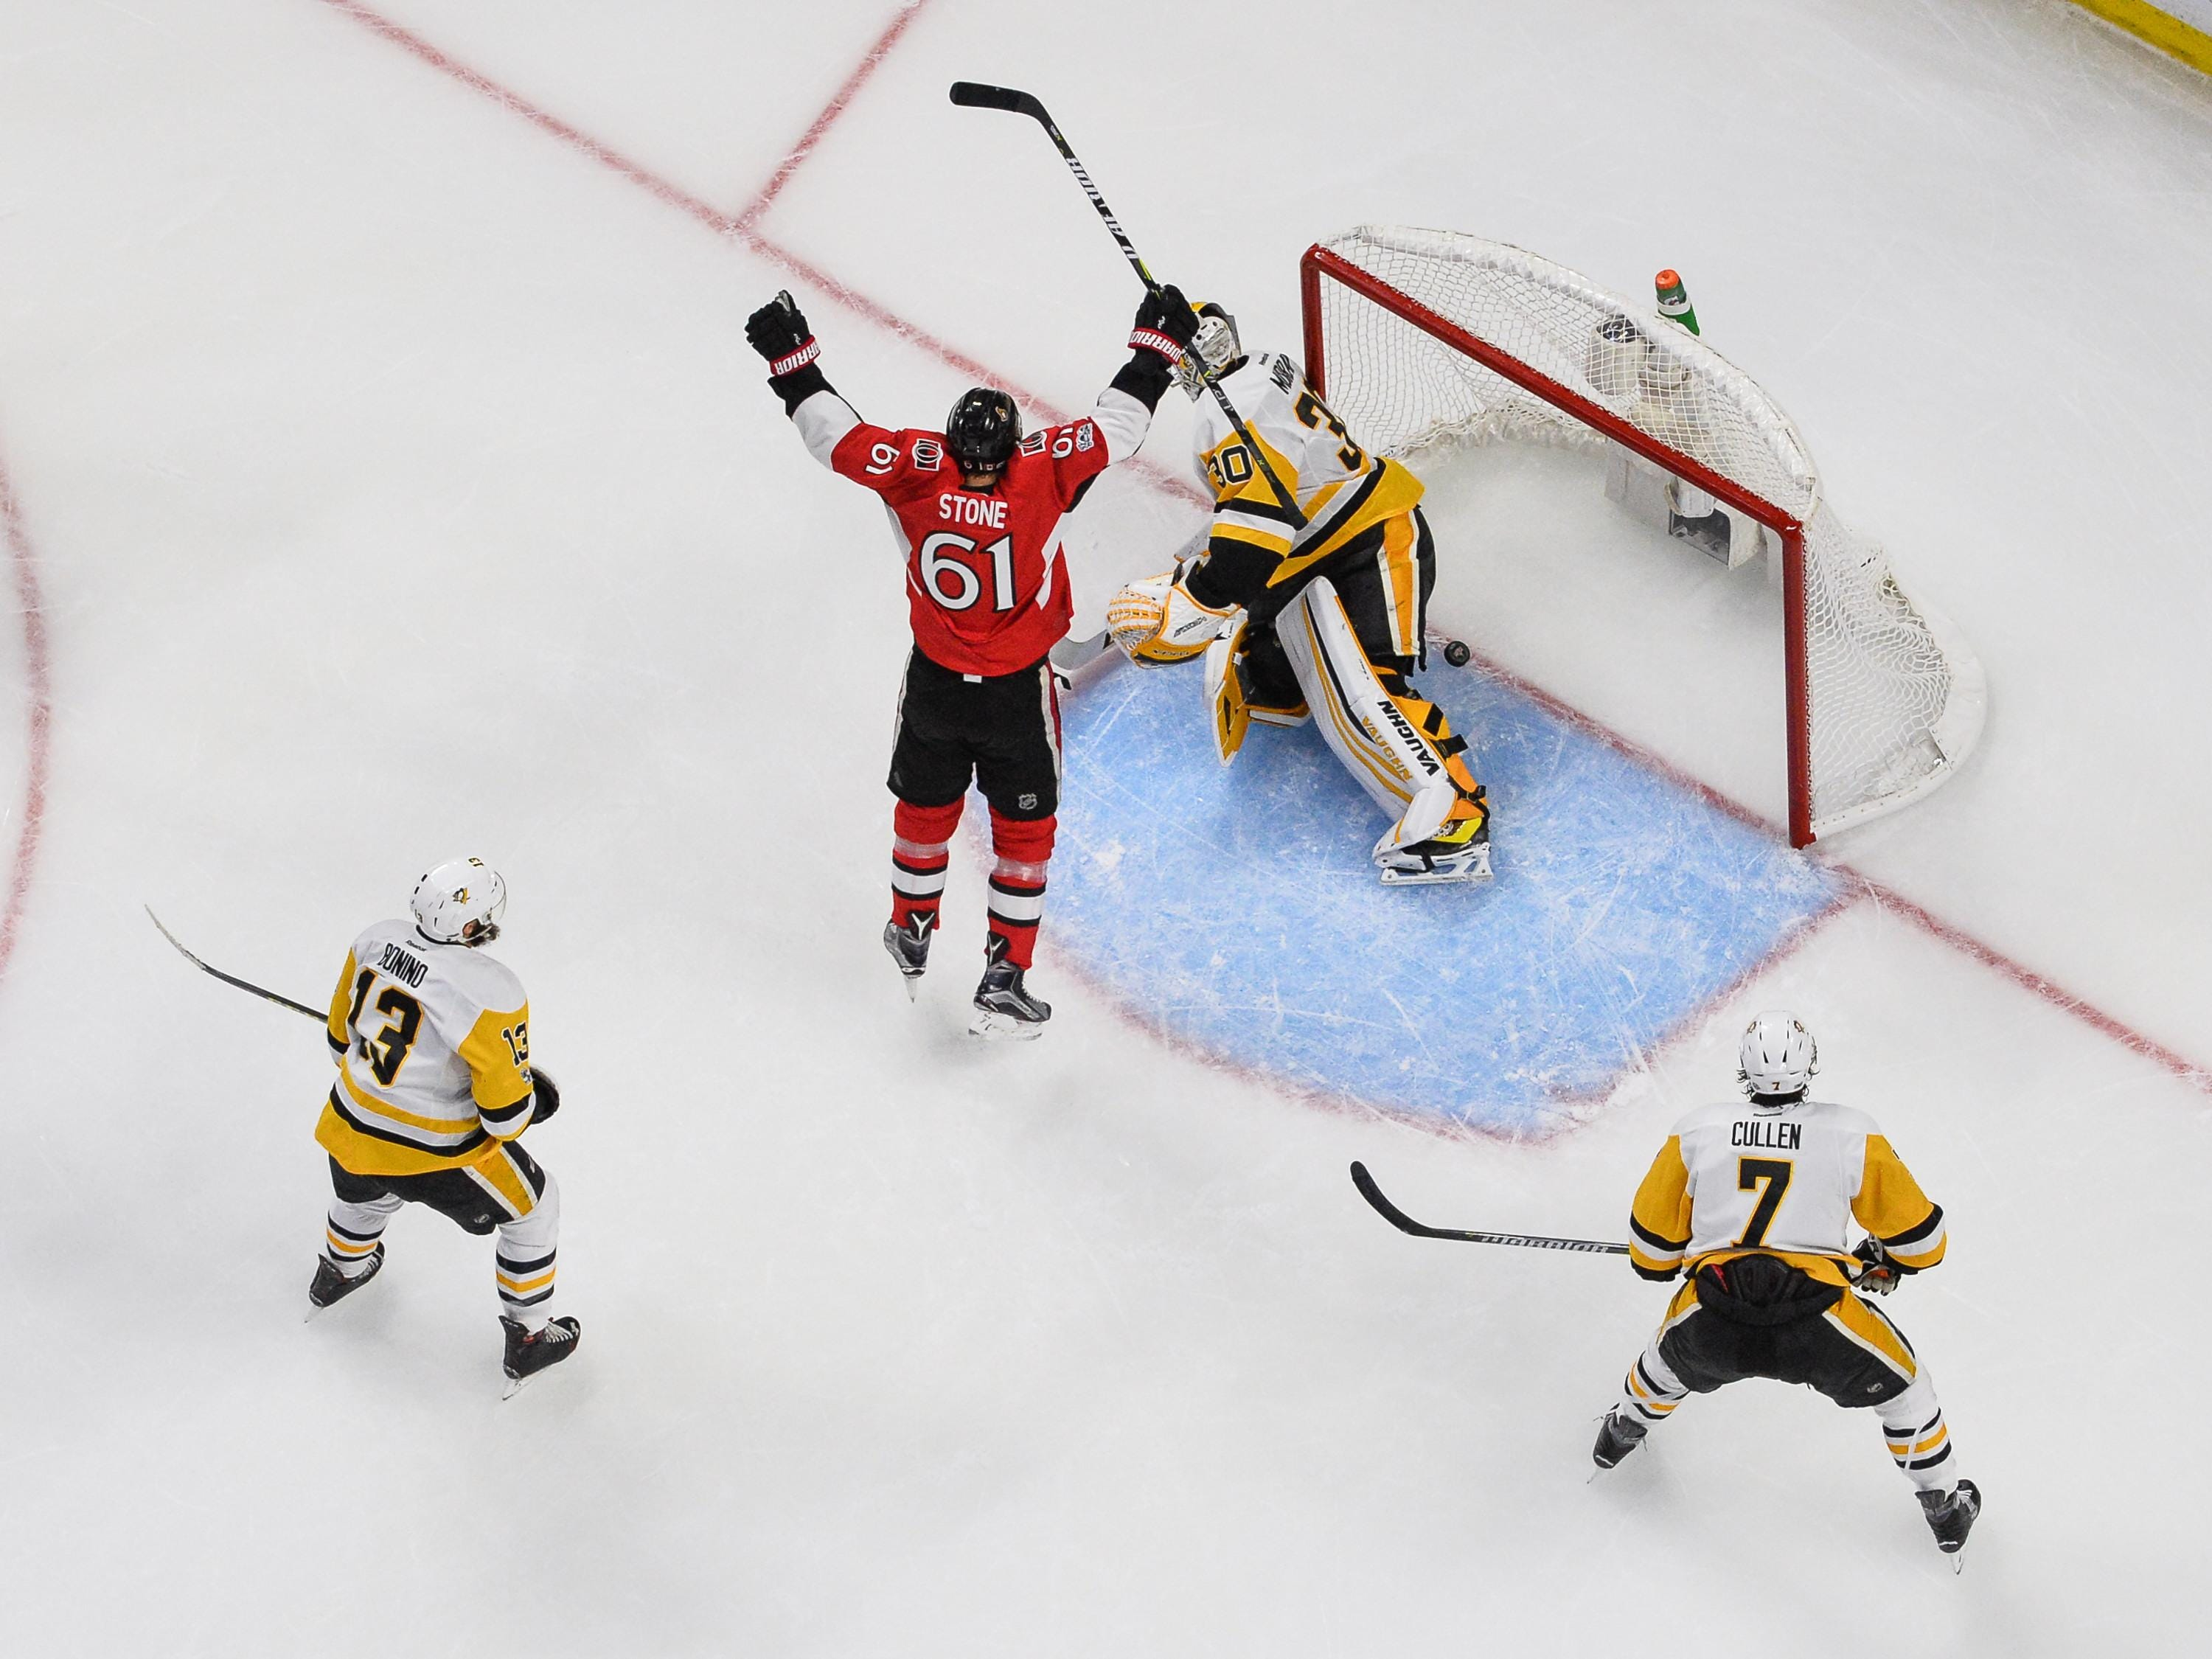 Hoffman's goal helps Senators force Game 7